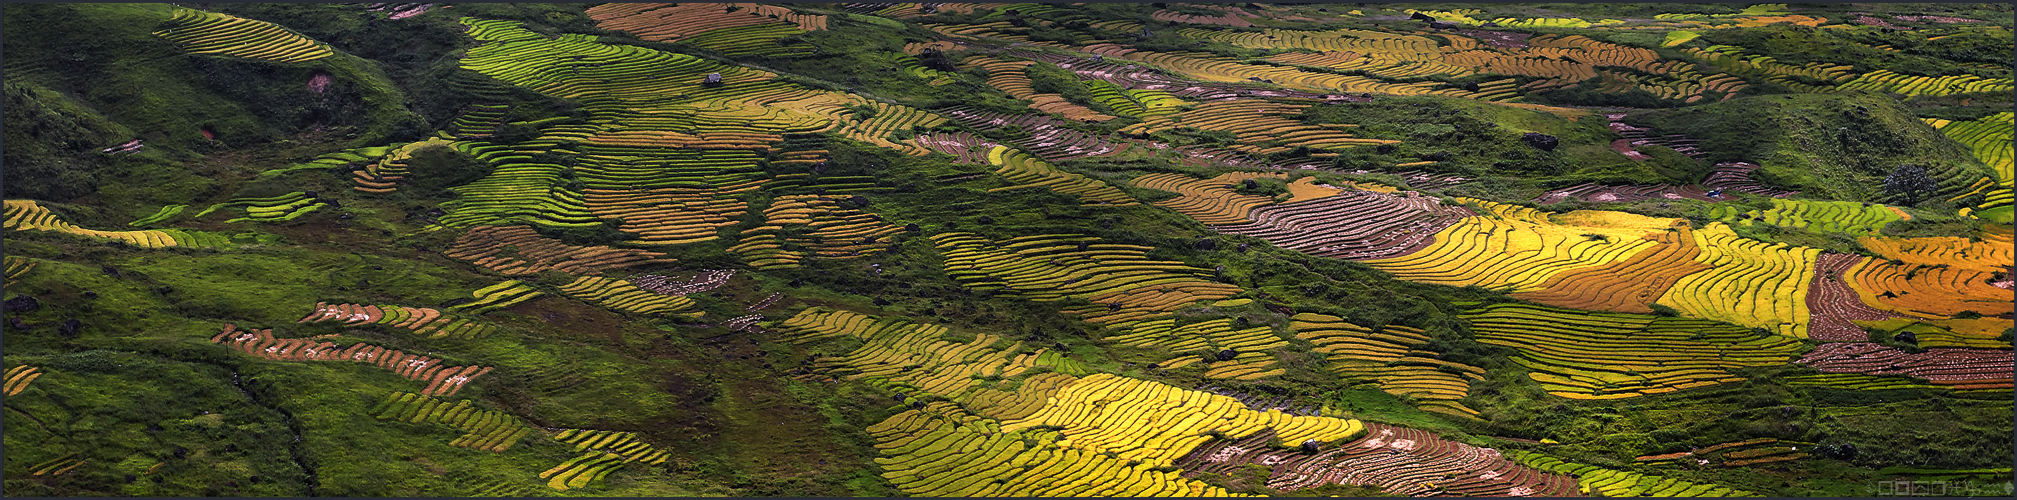 Travel Photography by Wolfgang Weinhardt